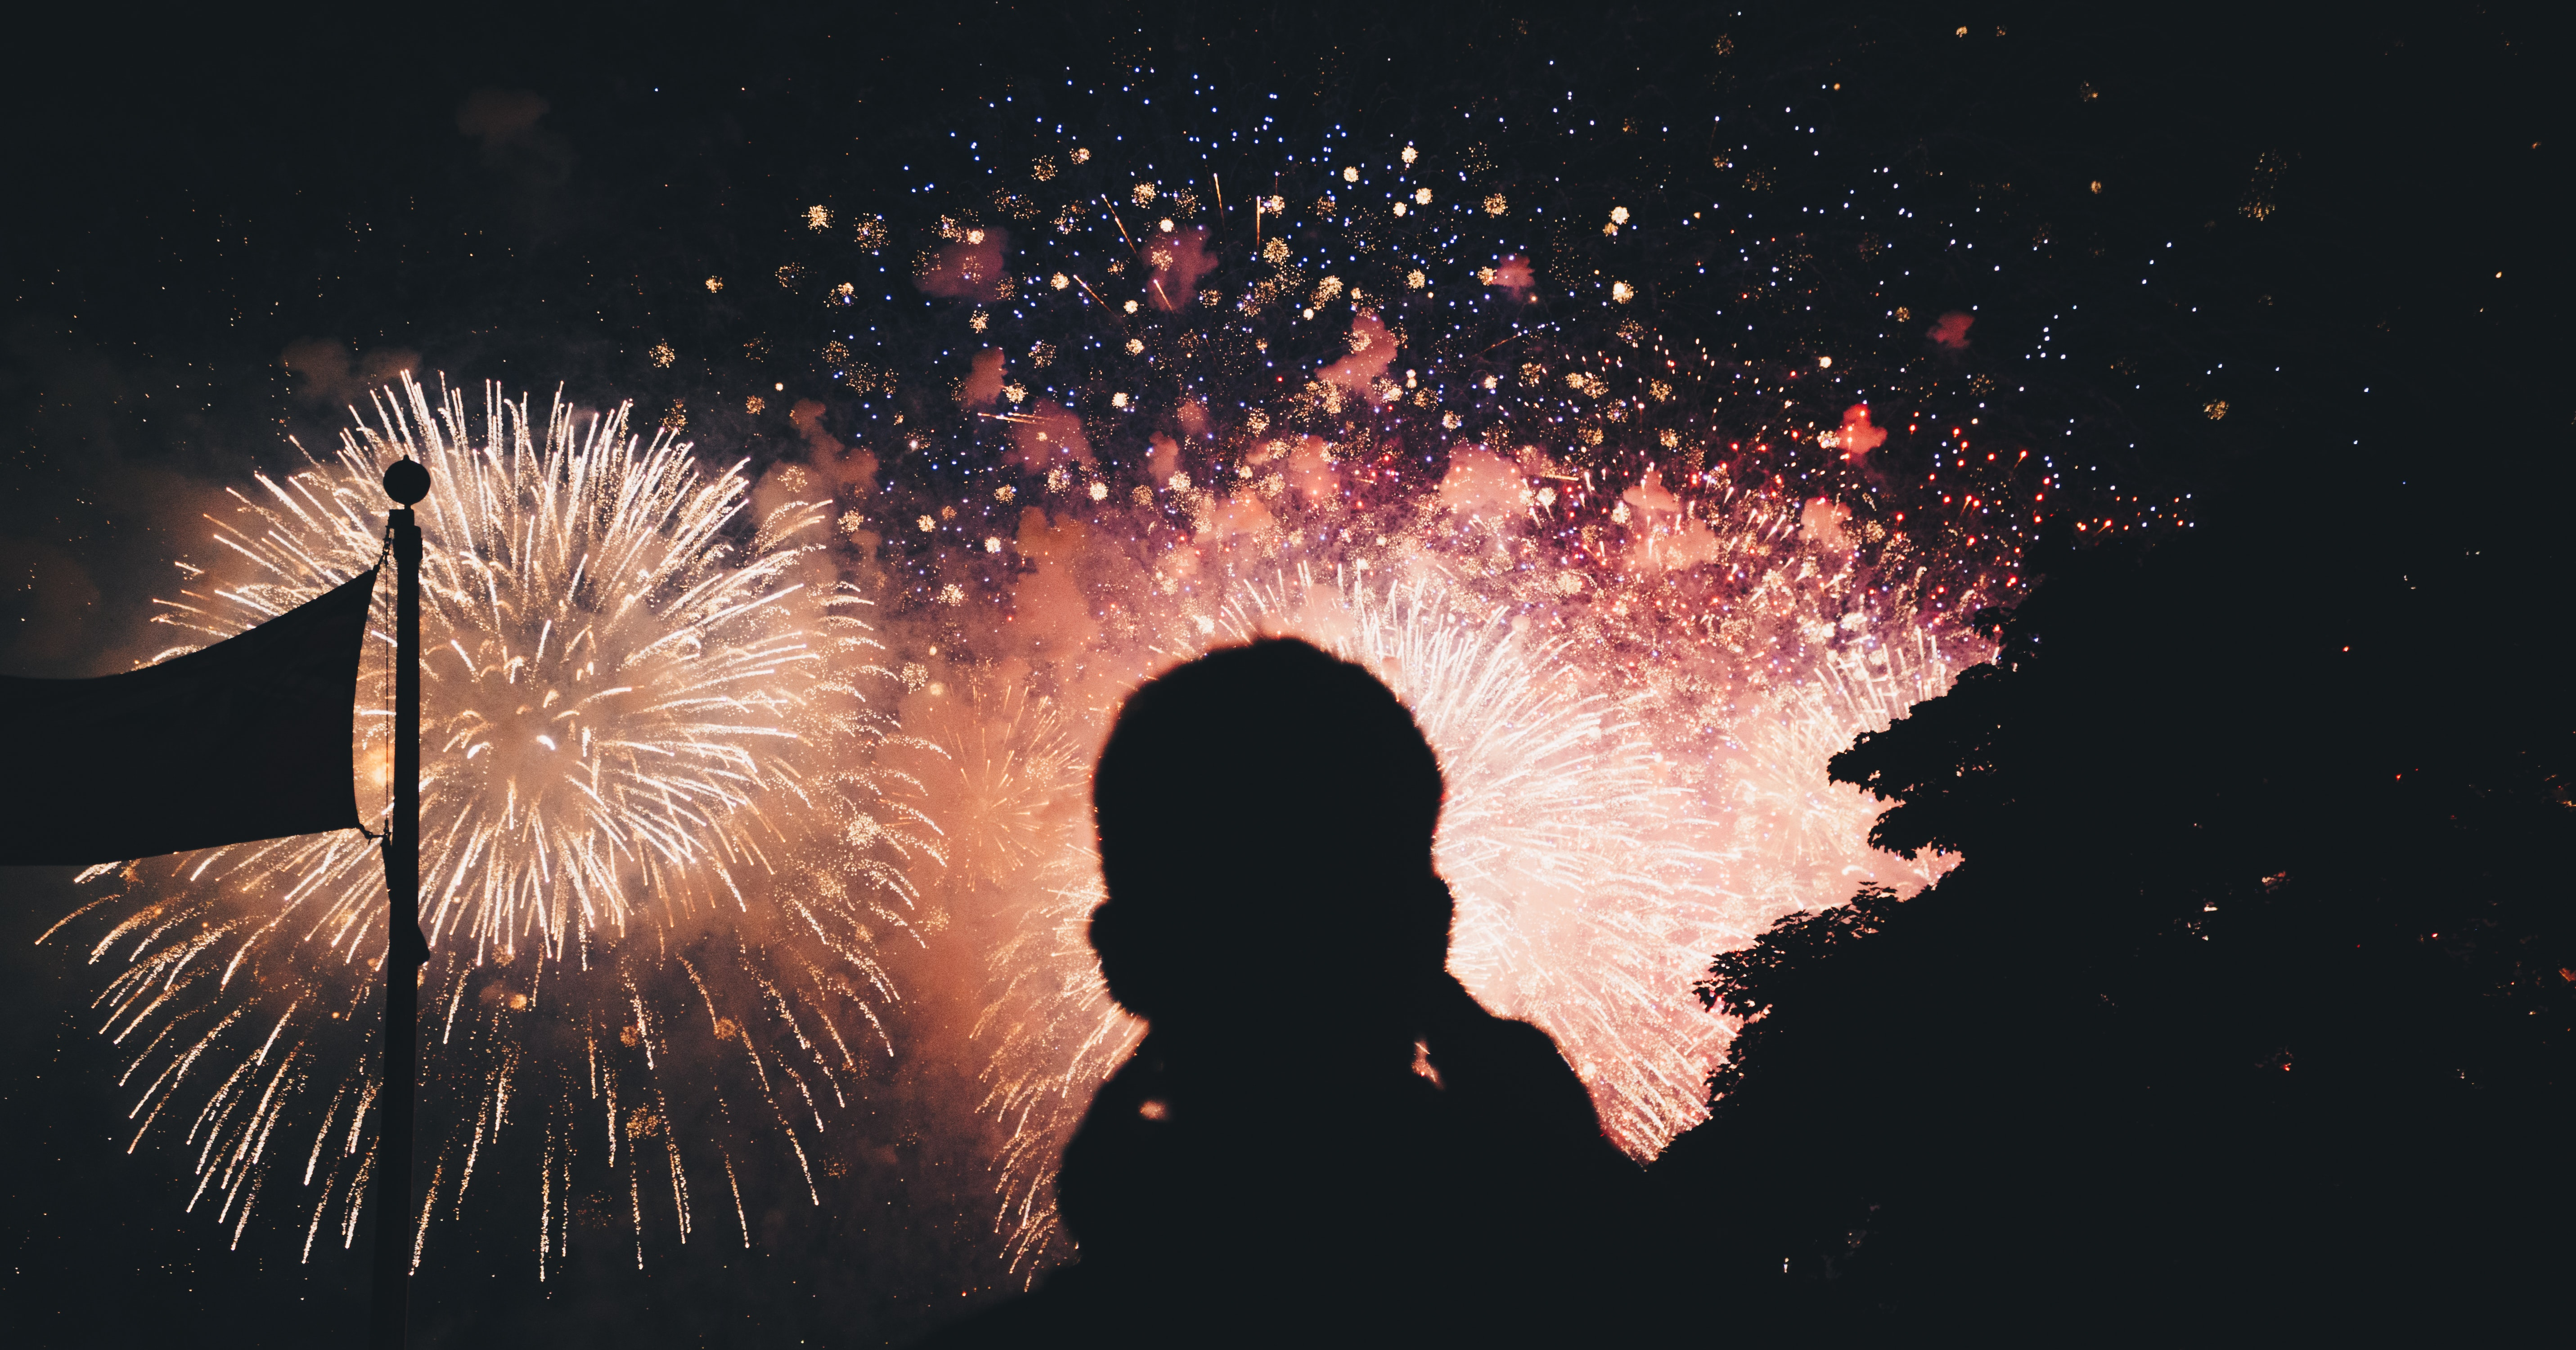 silhouette photo of fireworks